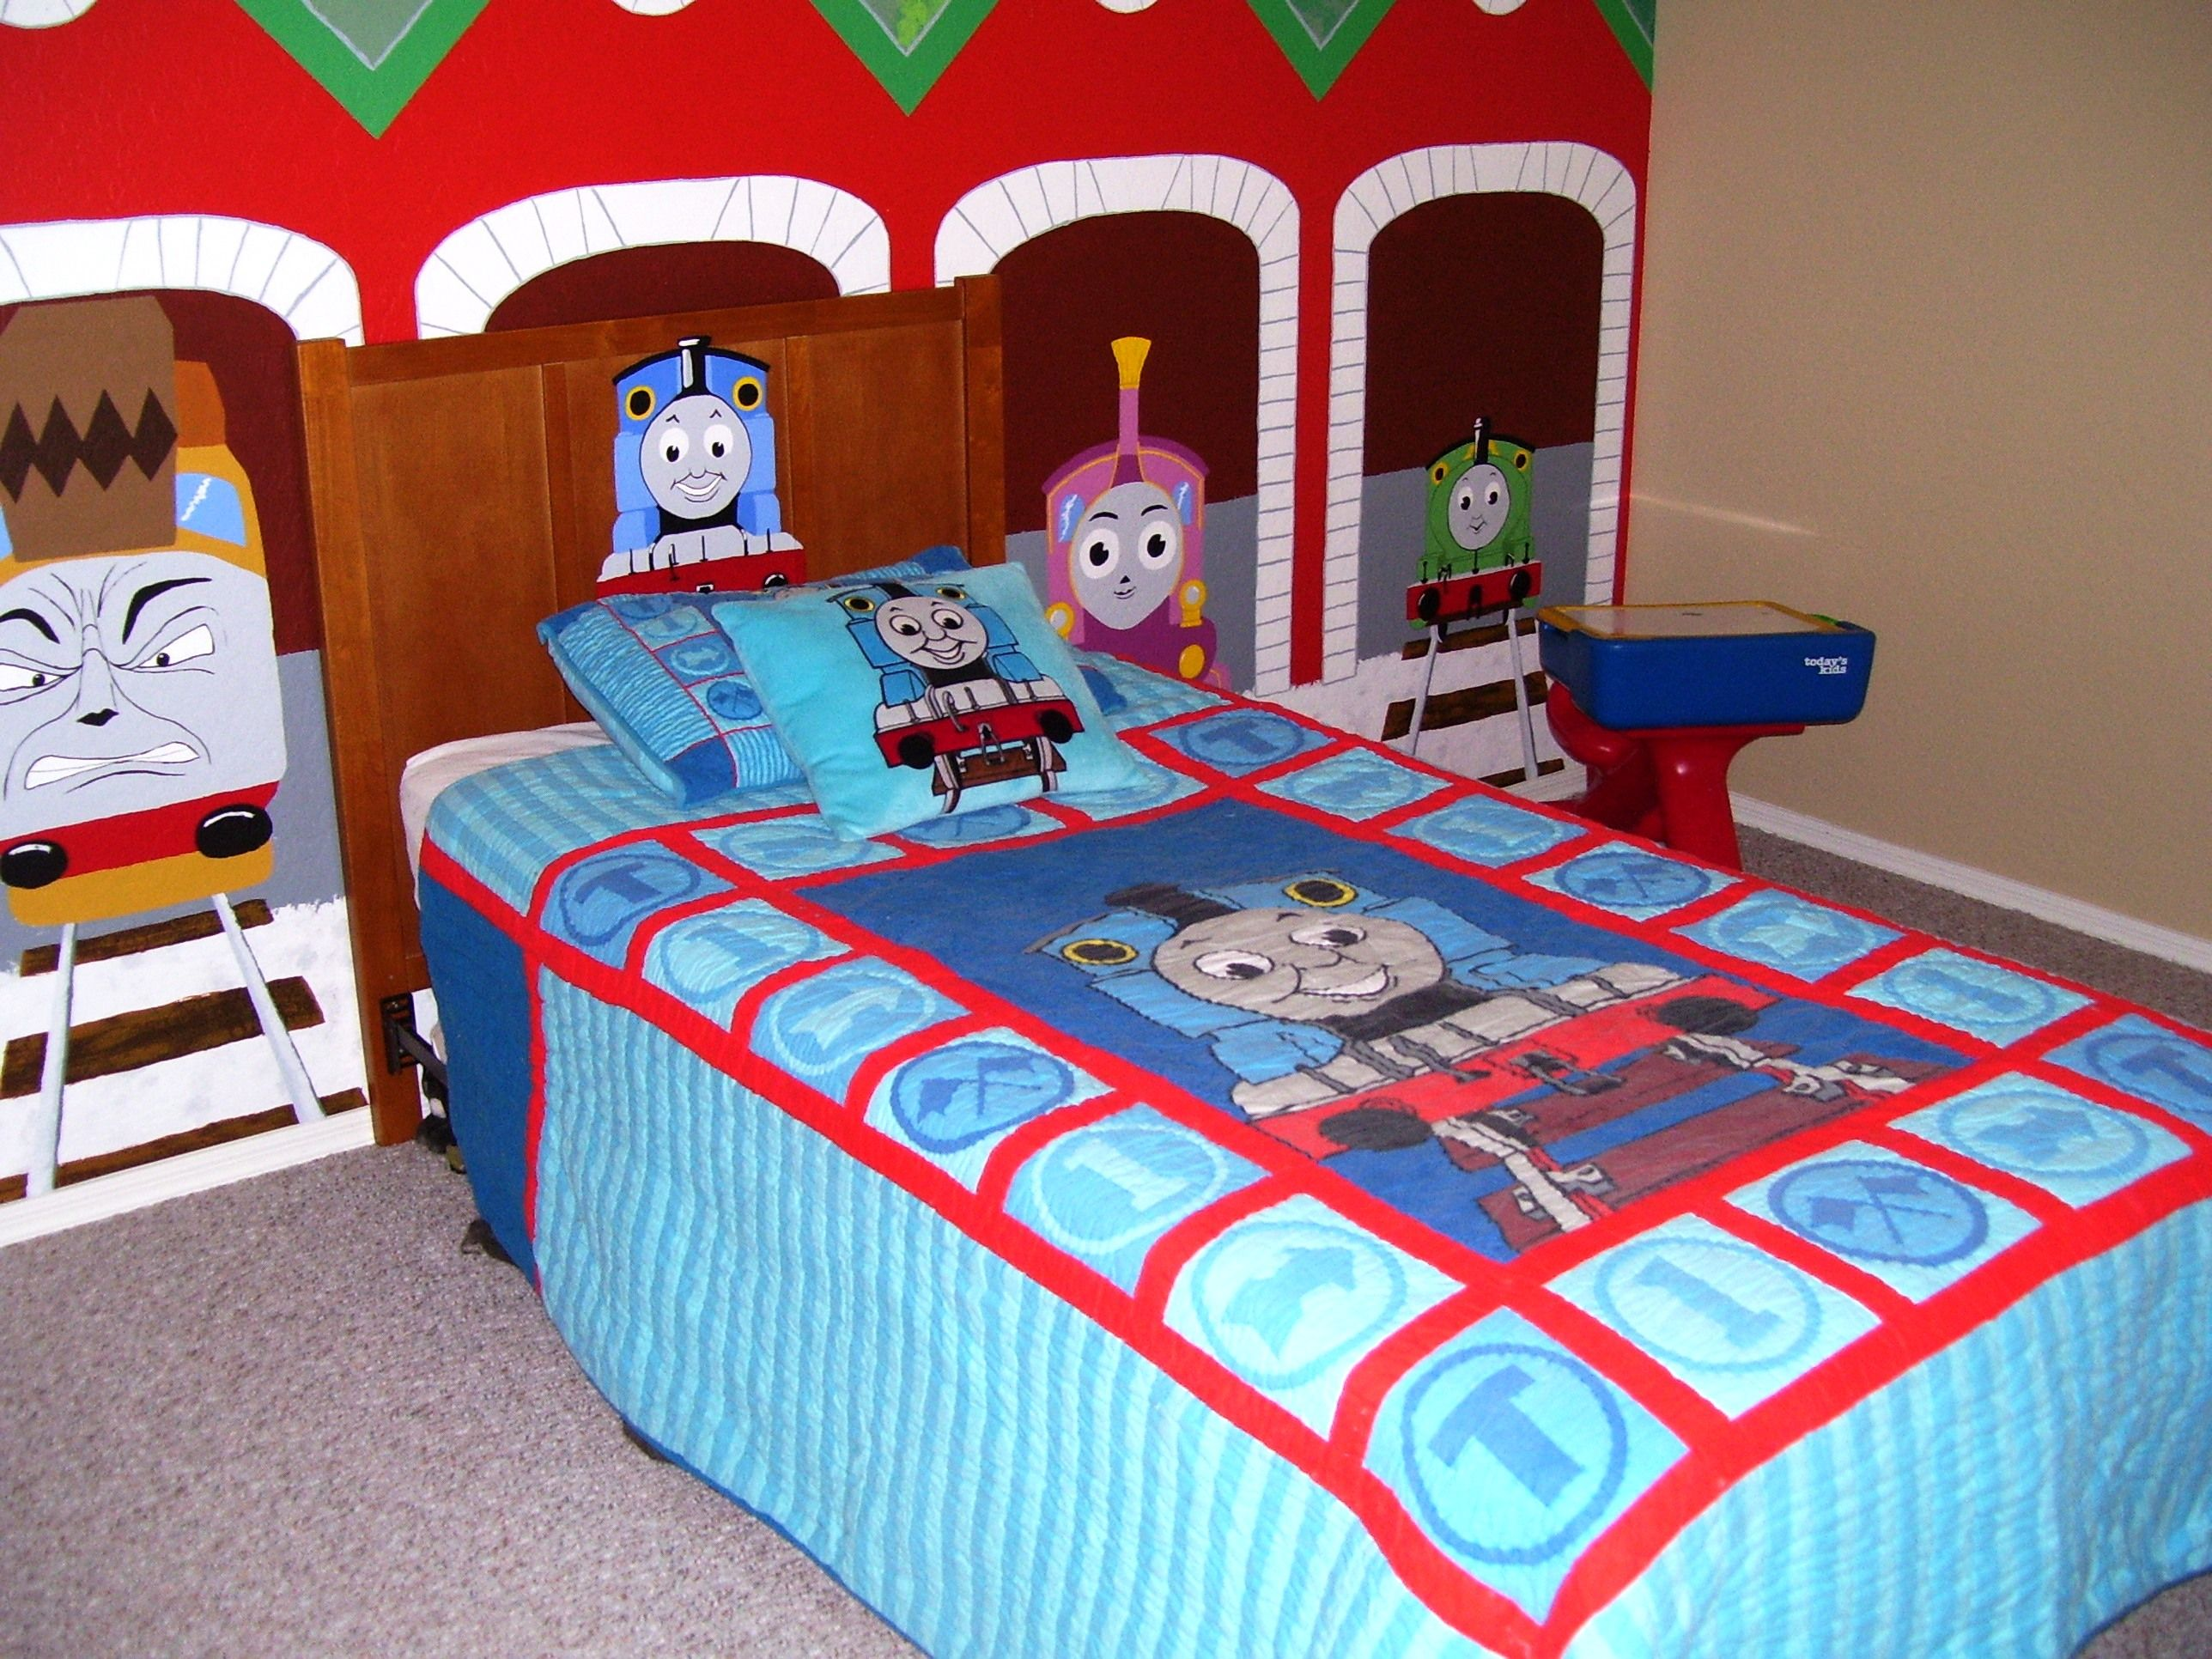 Thomas the Train Bedroom with Mural | Party ideas | Pinterest ...